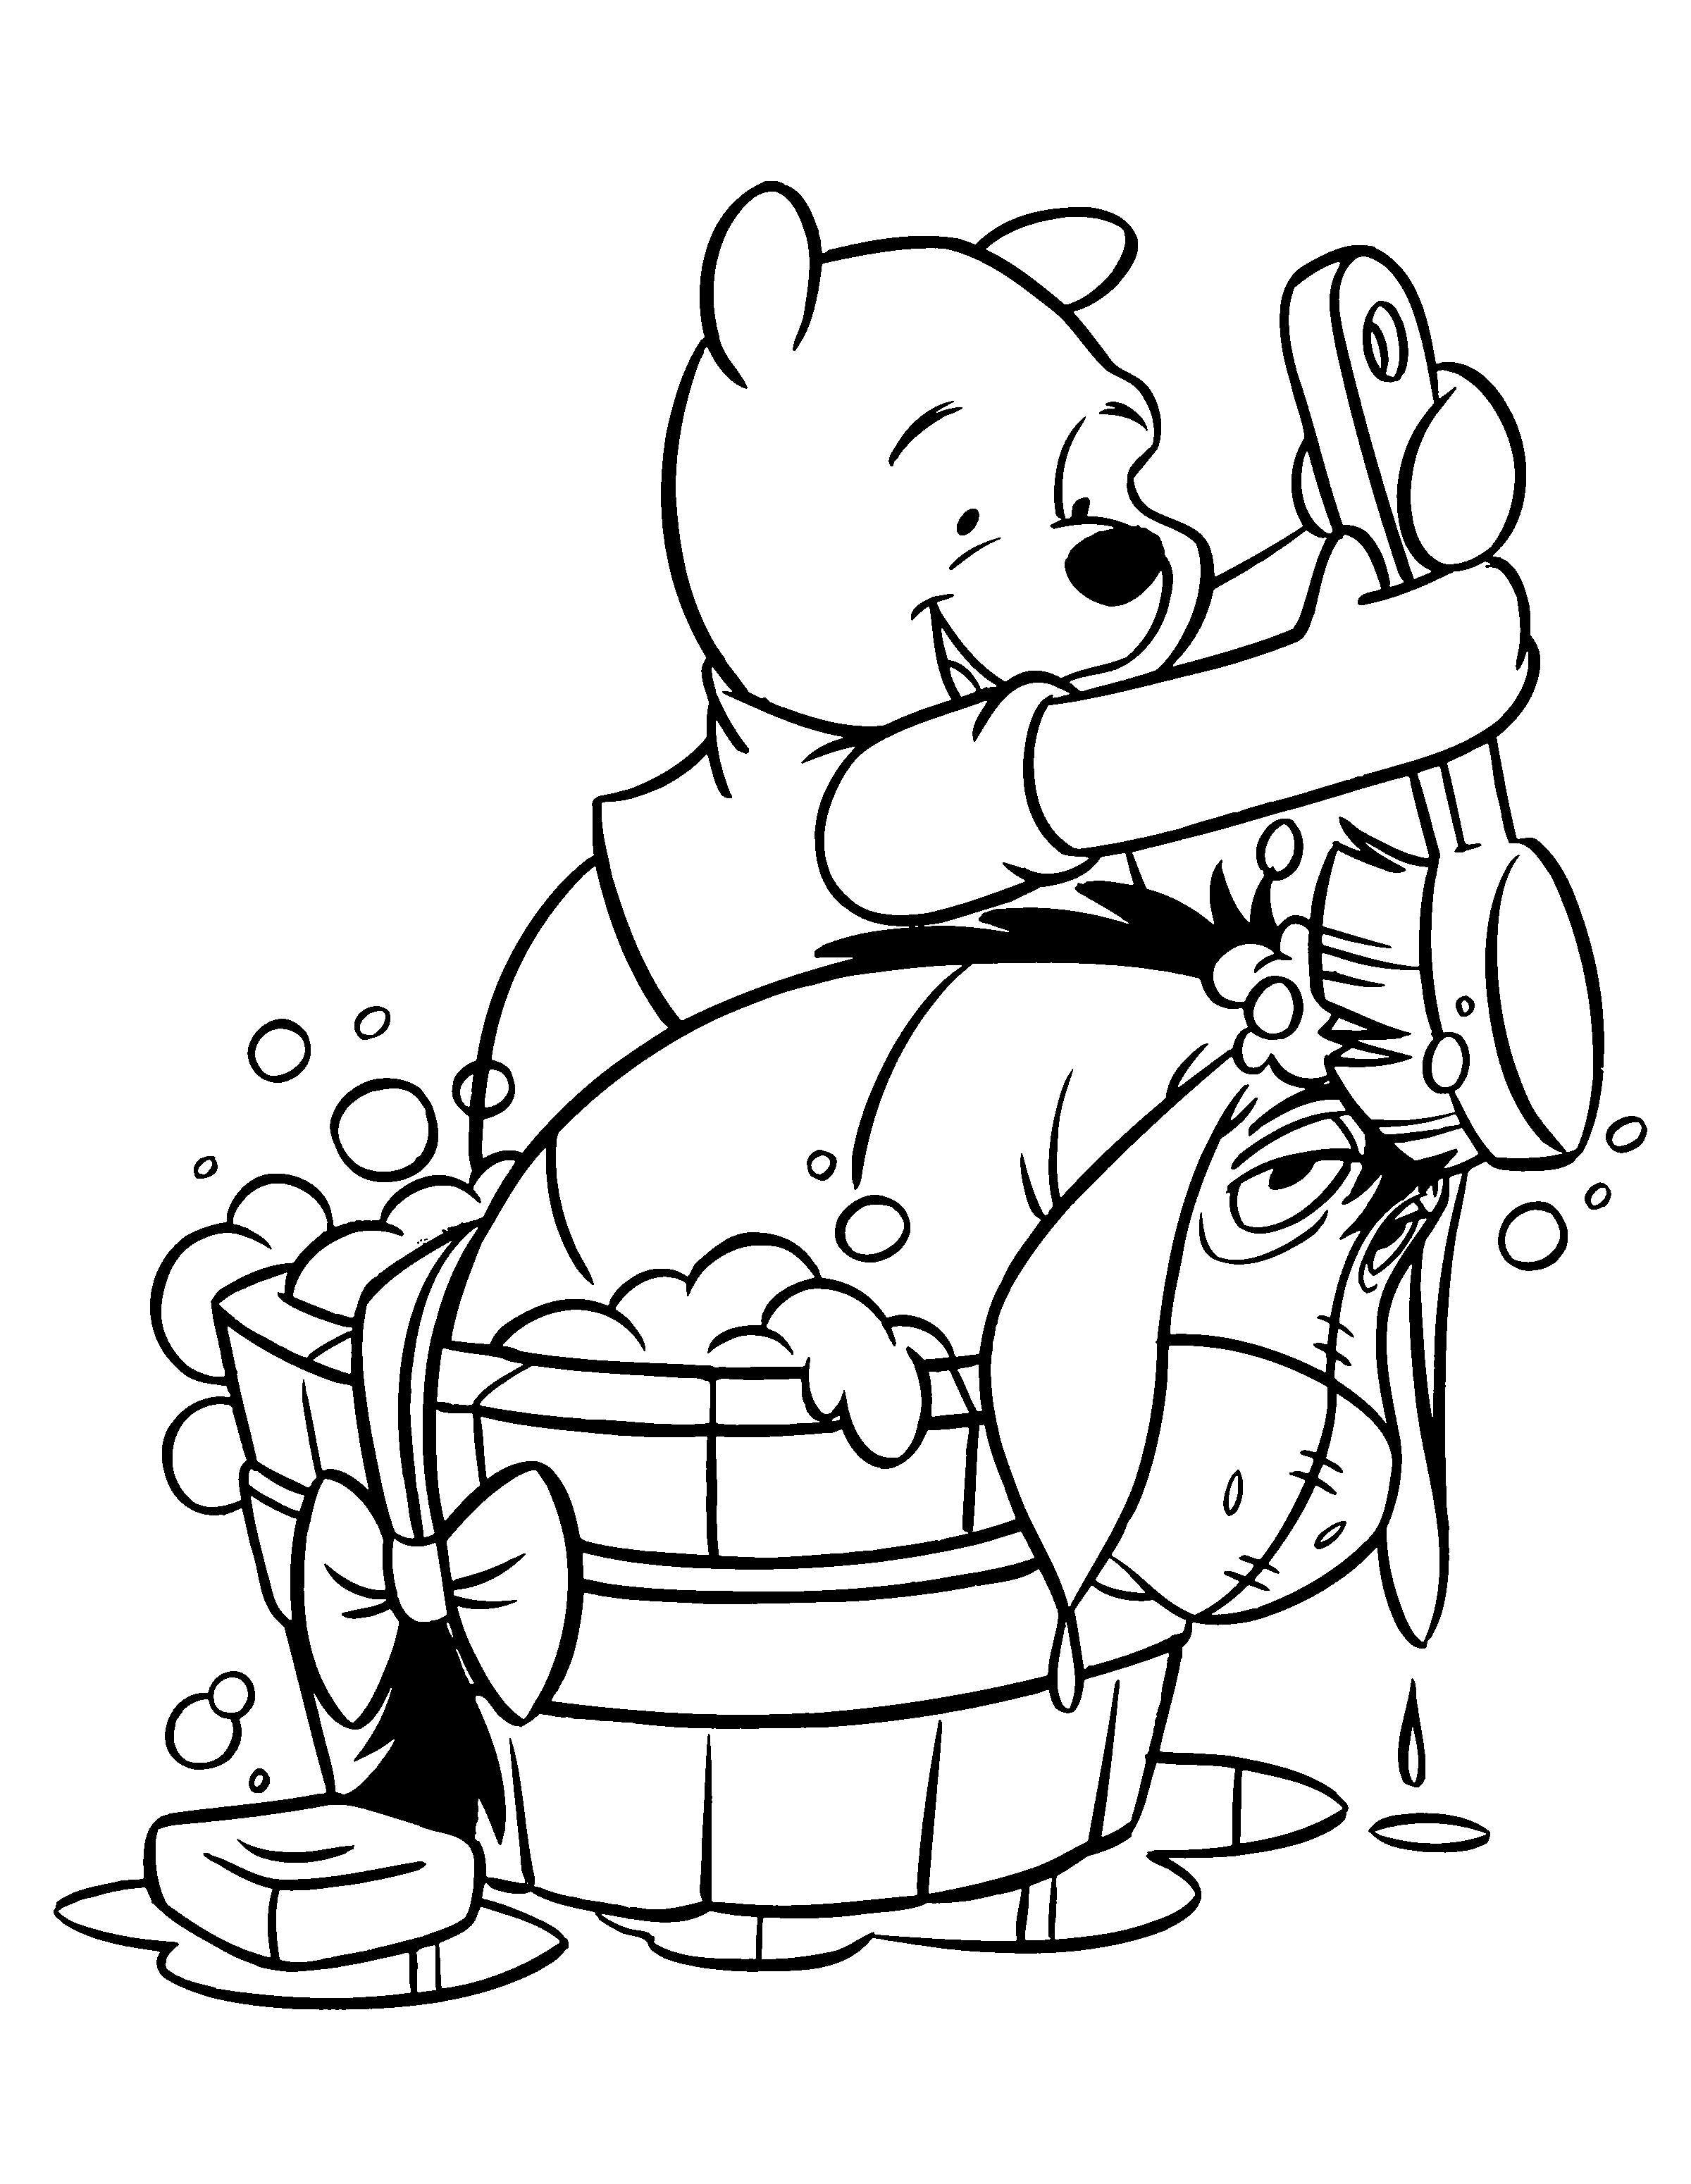 people coloring pages - winnie the pooh coloring pages